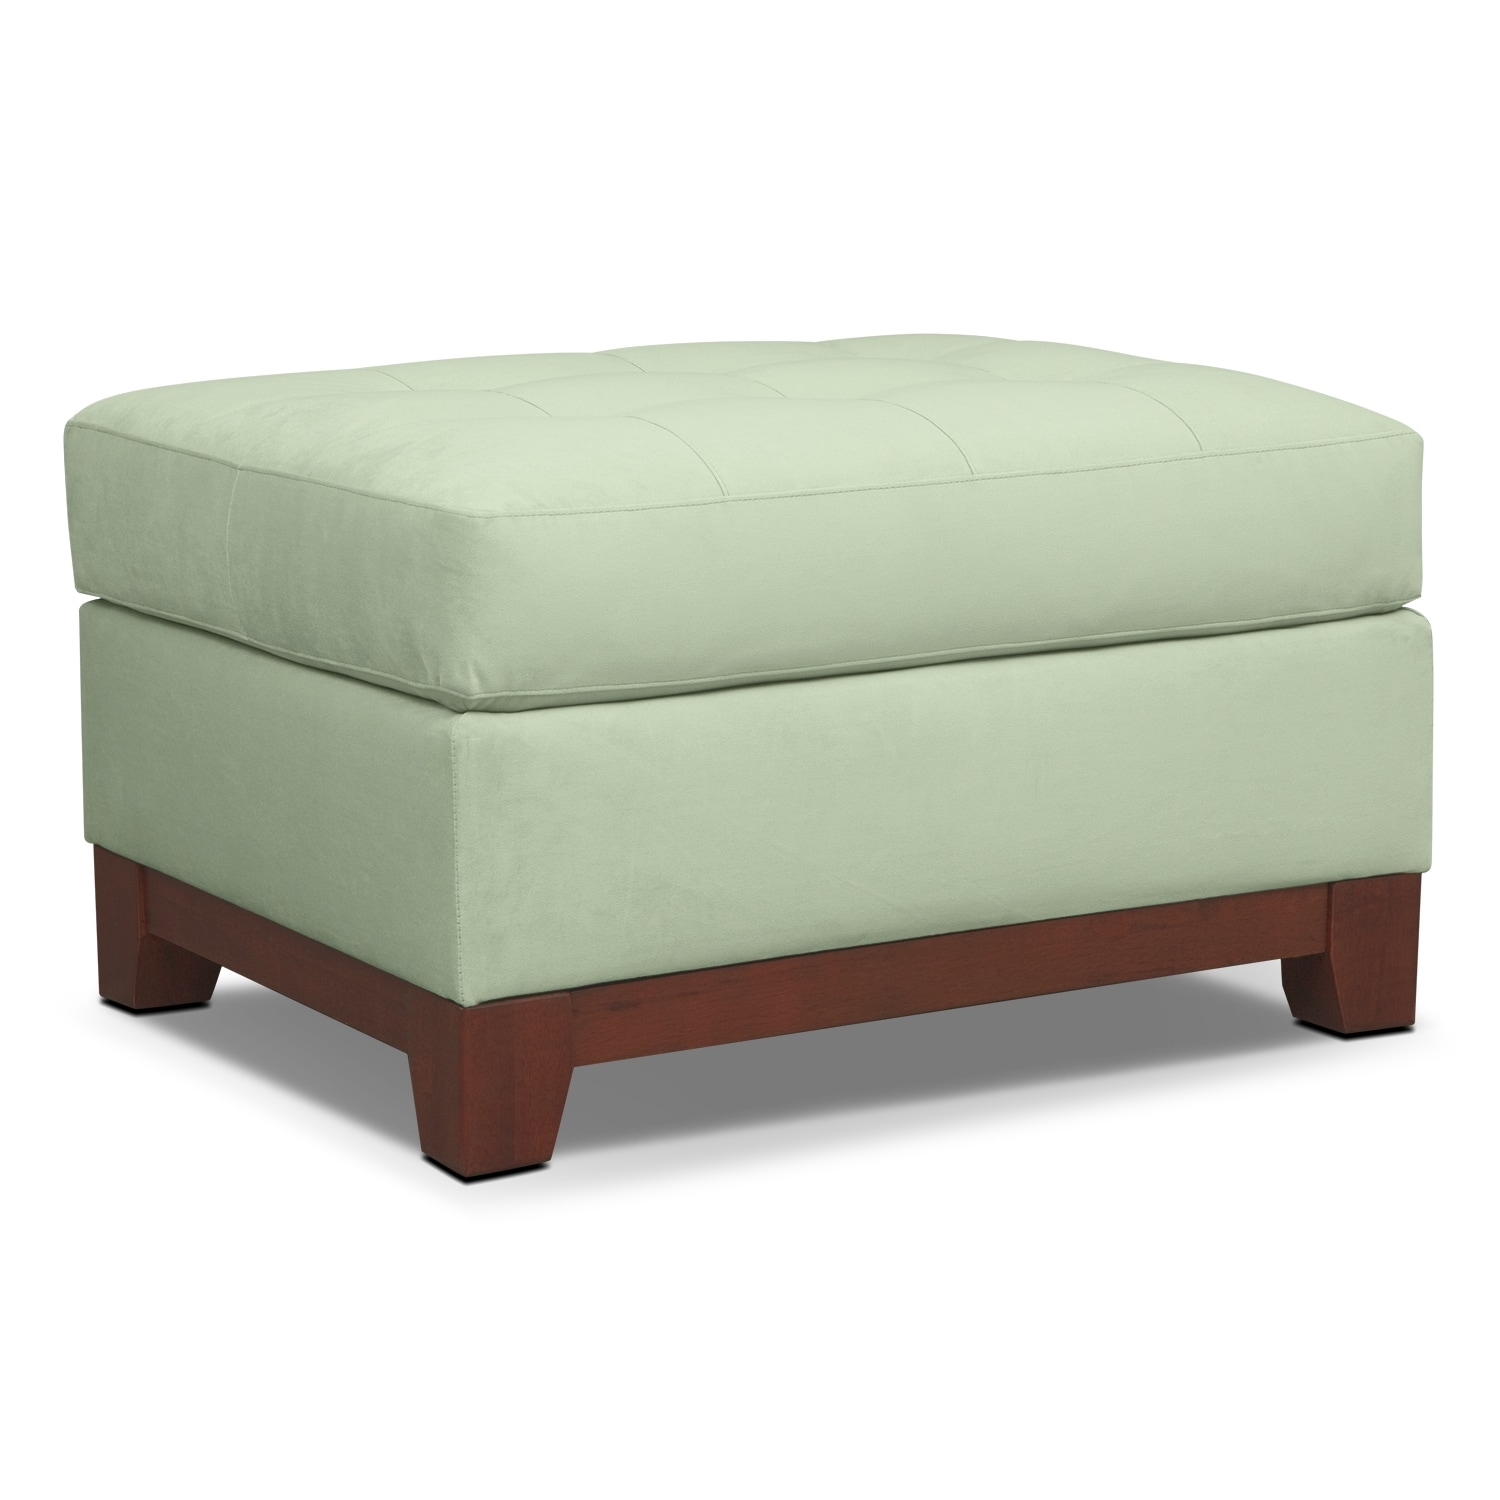 Living Room Furniture - Brookside Spa Ottoman